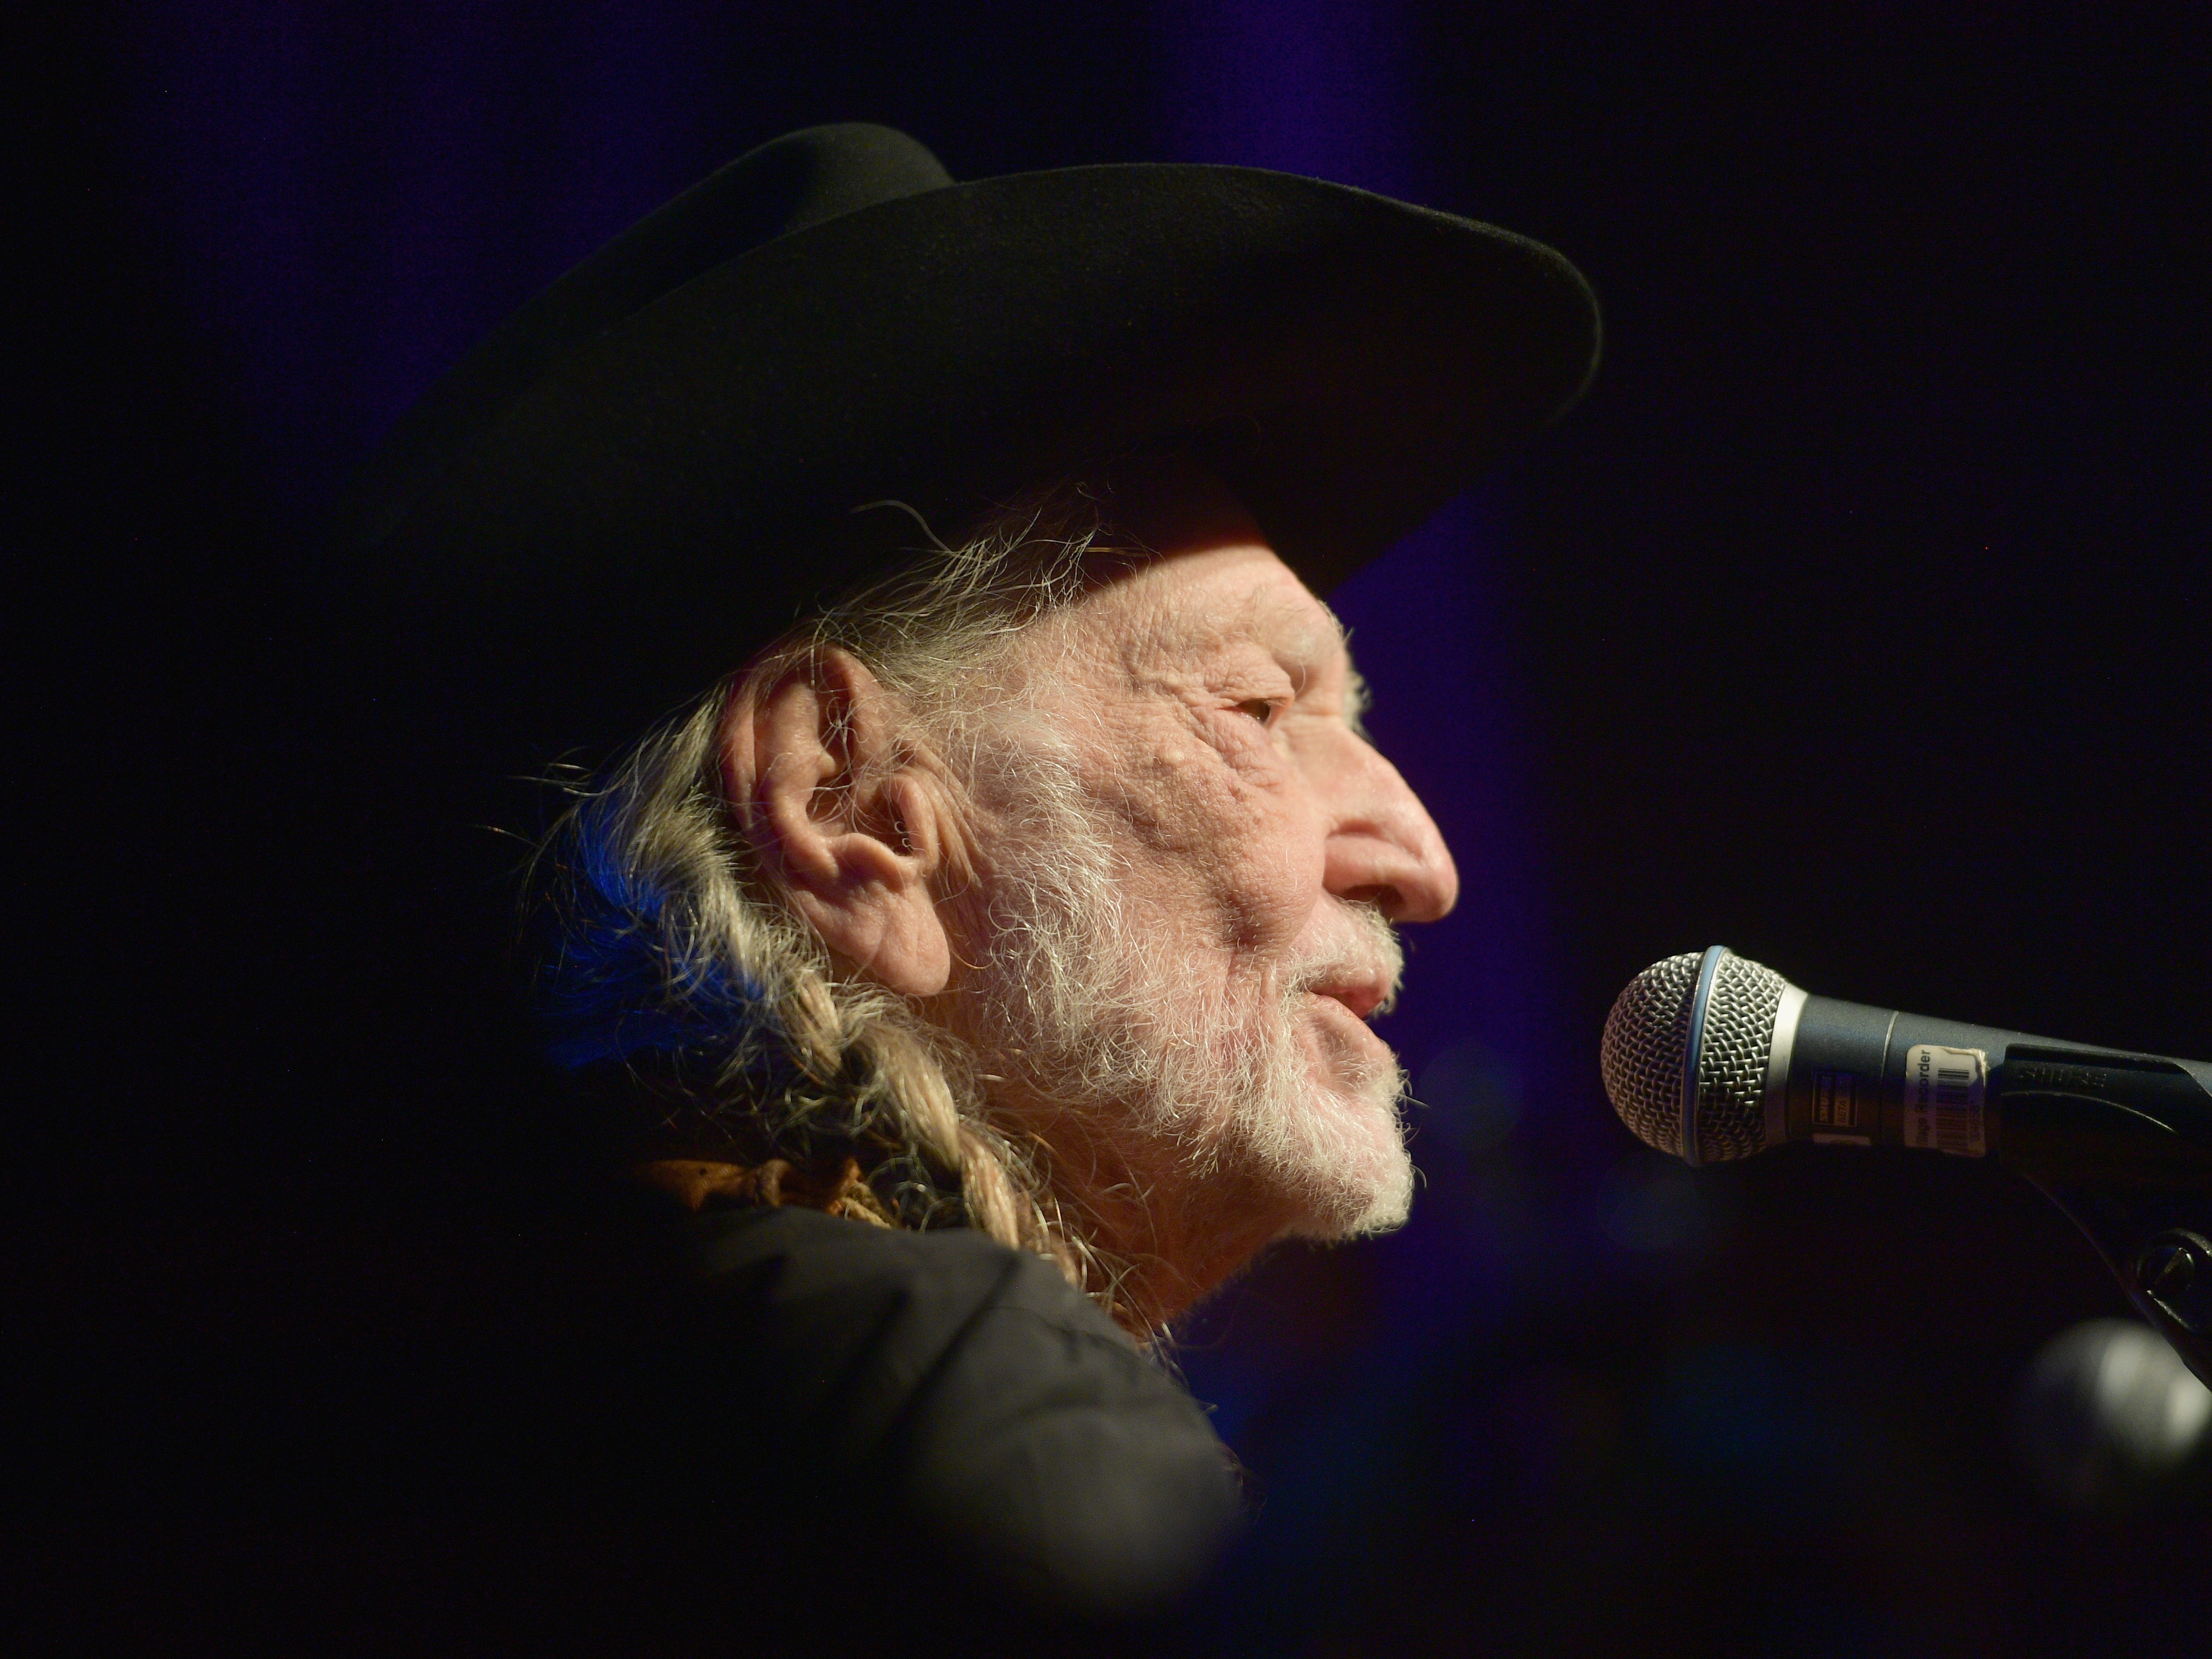 Concert announcements for Phoenix: Willie Nelson, Ziggy Marley, The Chainsmokers, Coheed and Cambria